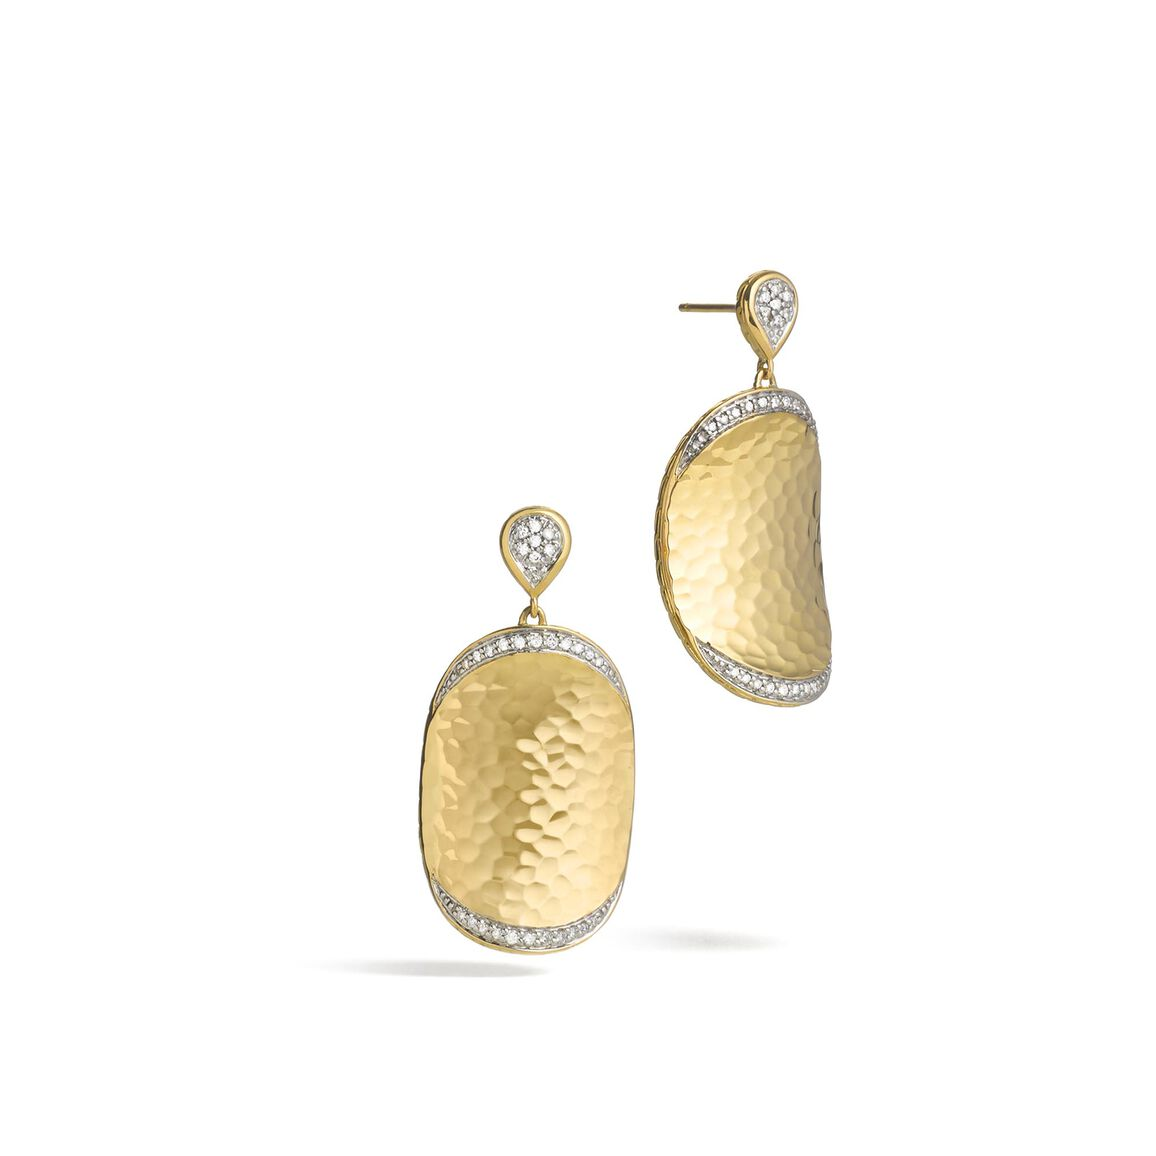 Classic Chain Large Drop Earring, Hammered 18K, Diamonds